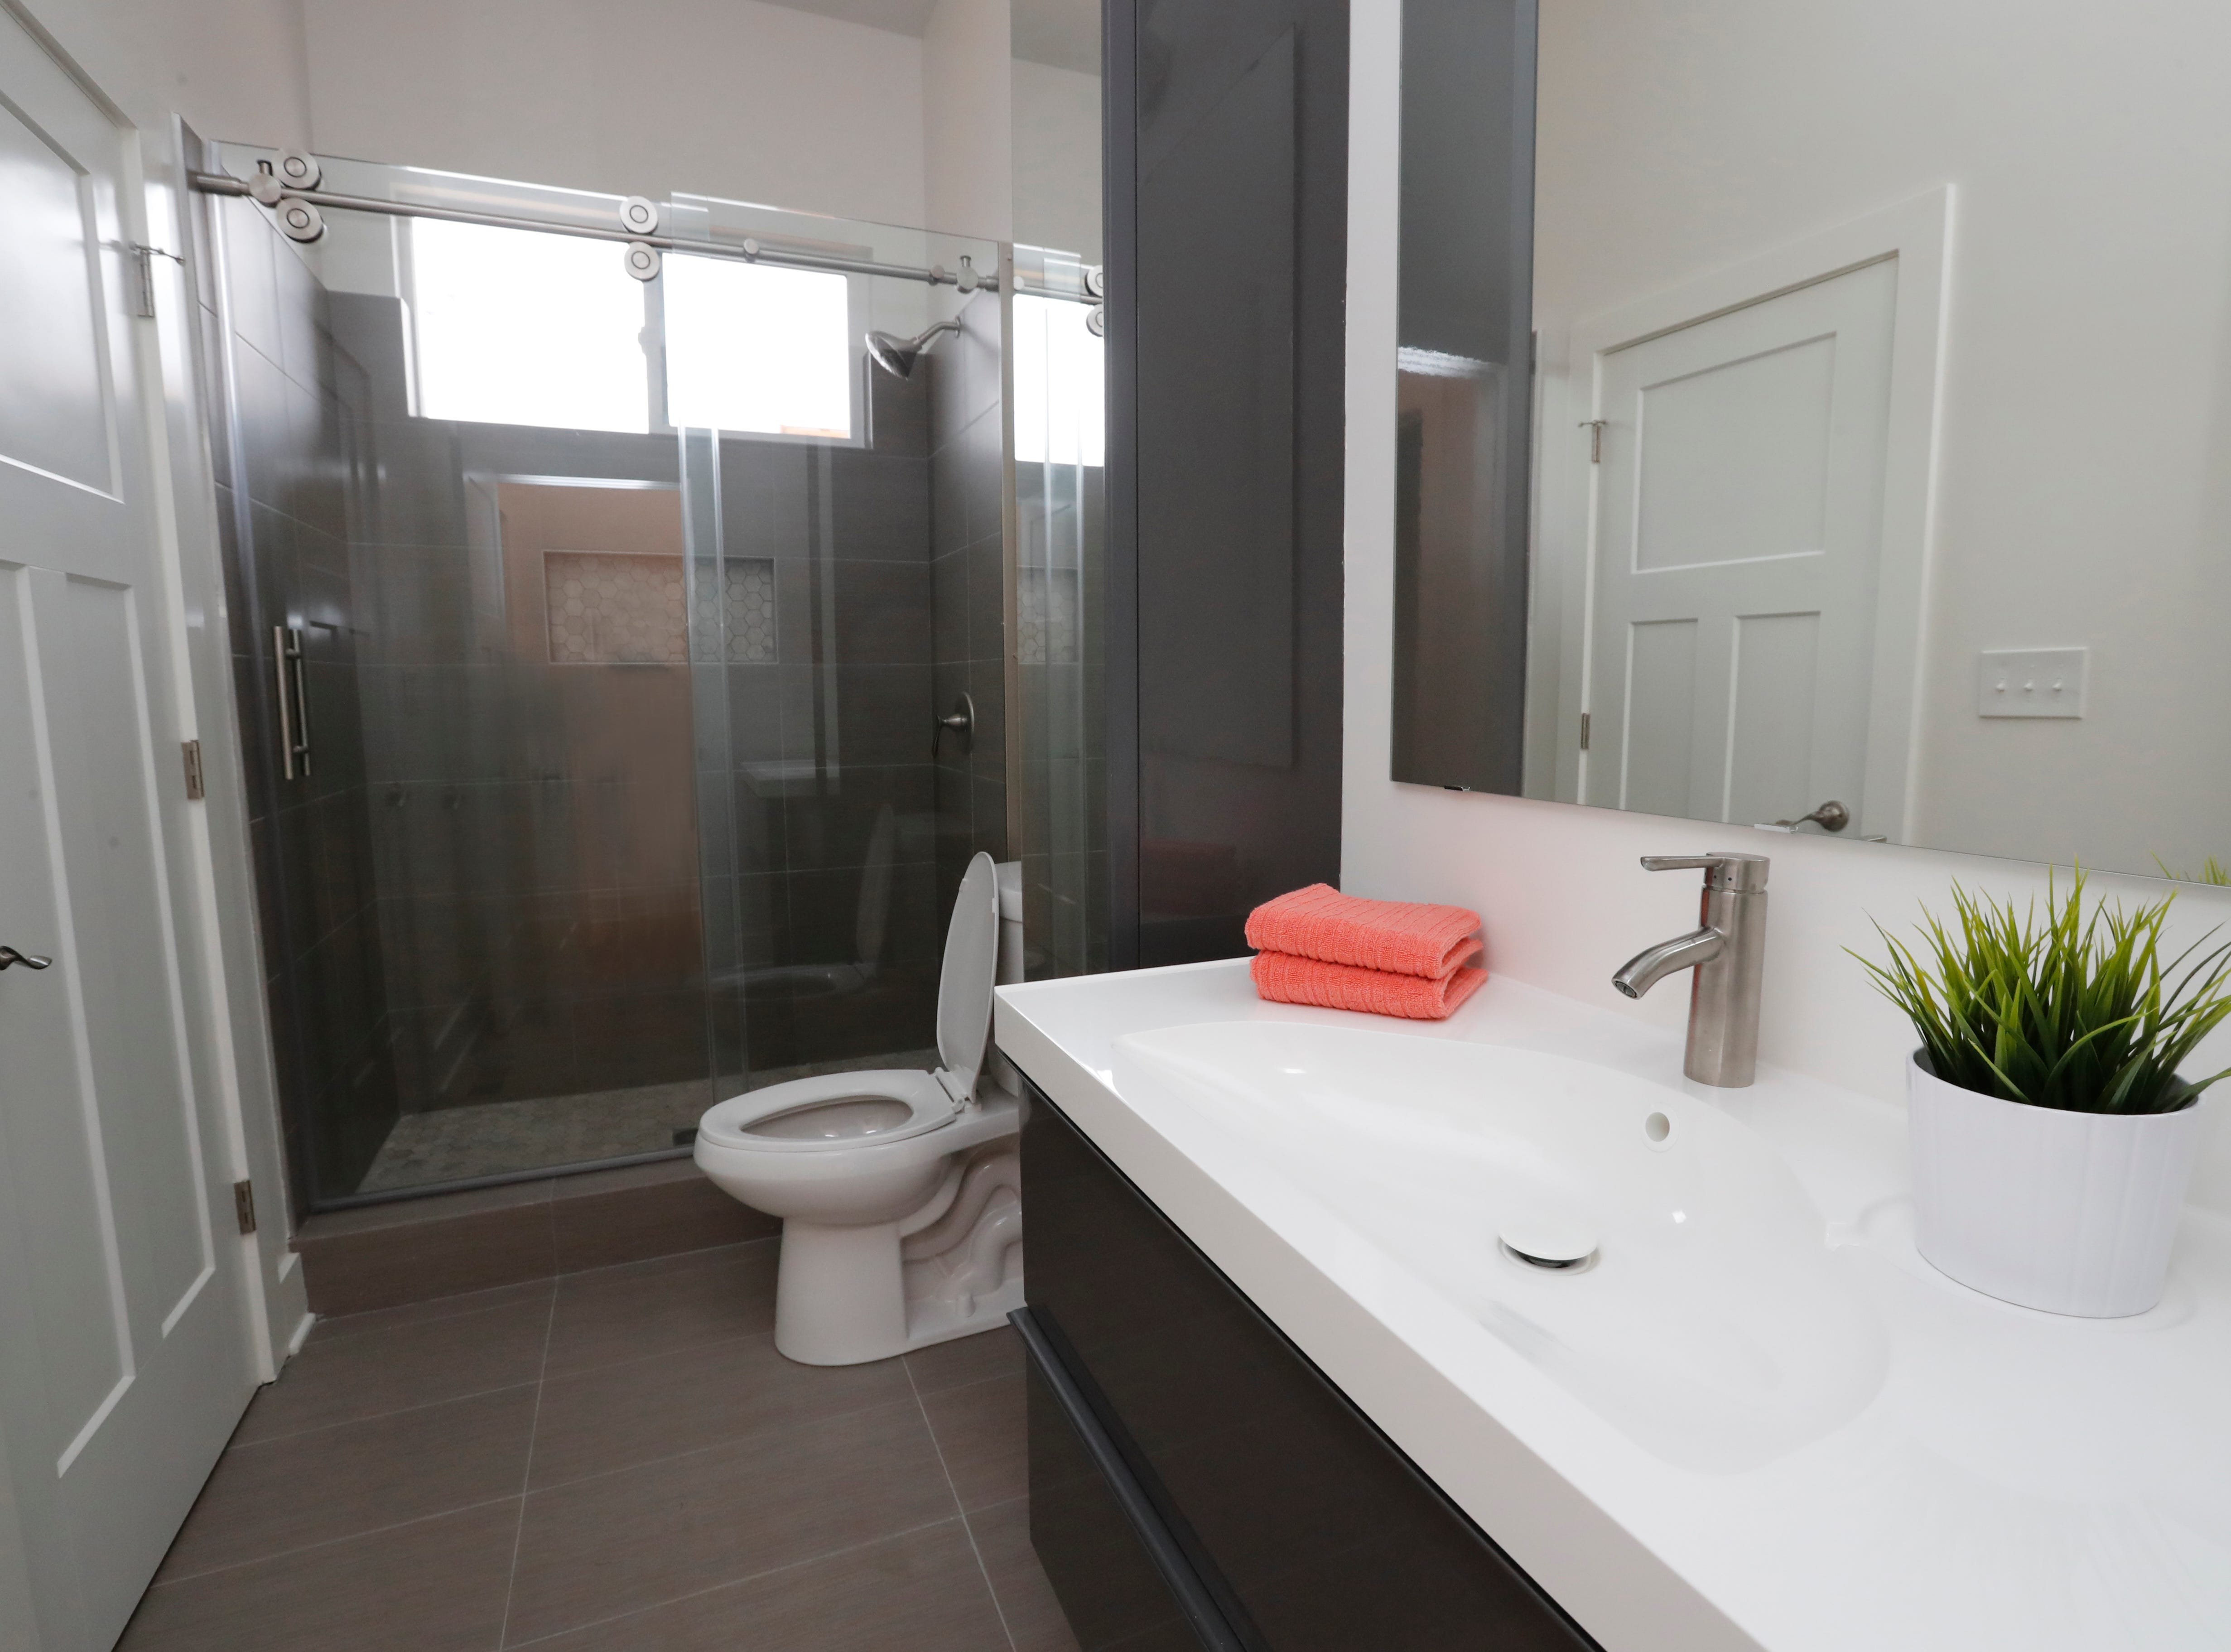 A first-floor bedroom with attached bath provides future homeowners the option of a master suite on the first floor inside a newly built modern architectural home up for sale at 1134 Woodlawn Ave., Indianapolis, Ind., 46203, in the heart of the historic Fountain Square neighborhood on Wednesday, January 23, 2019. The three-story home, which features 2,030-square-feet and an open space concept tile and hardwood floors are priced at $479,900.